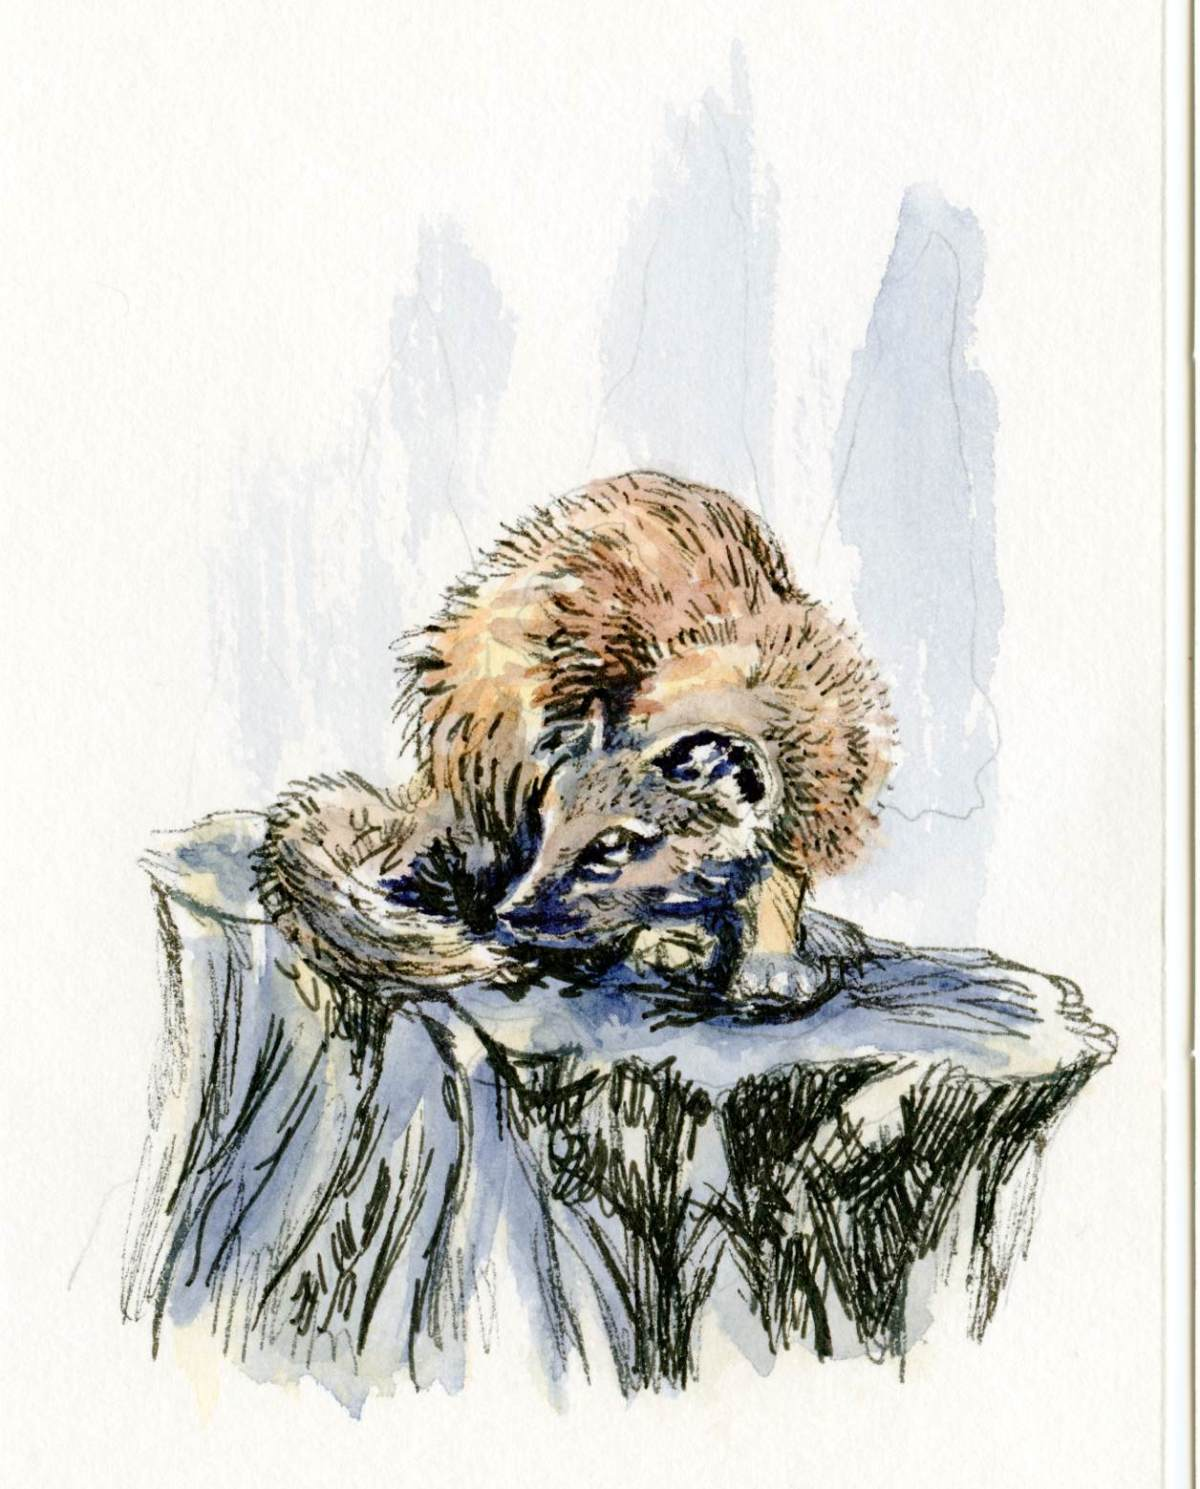 Pine Marten – Postcards for the Lunch Bag